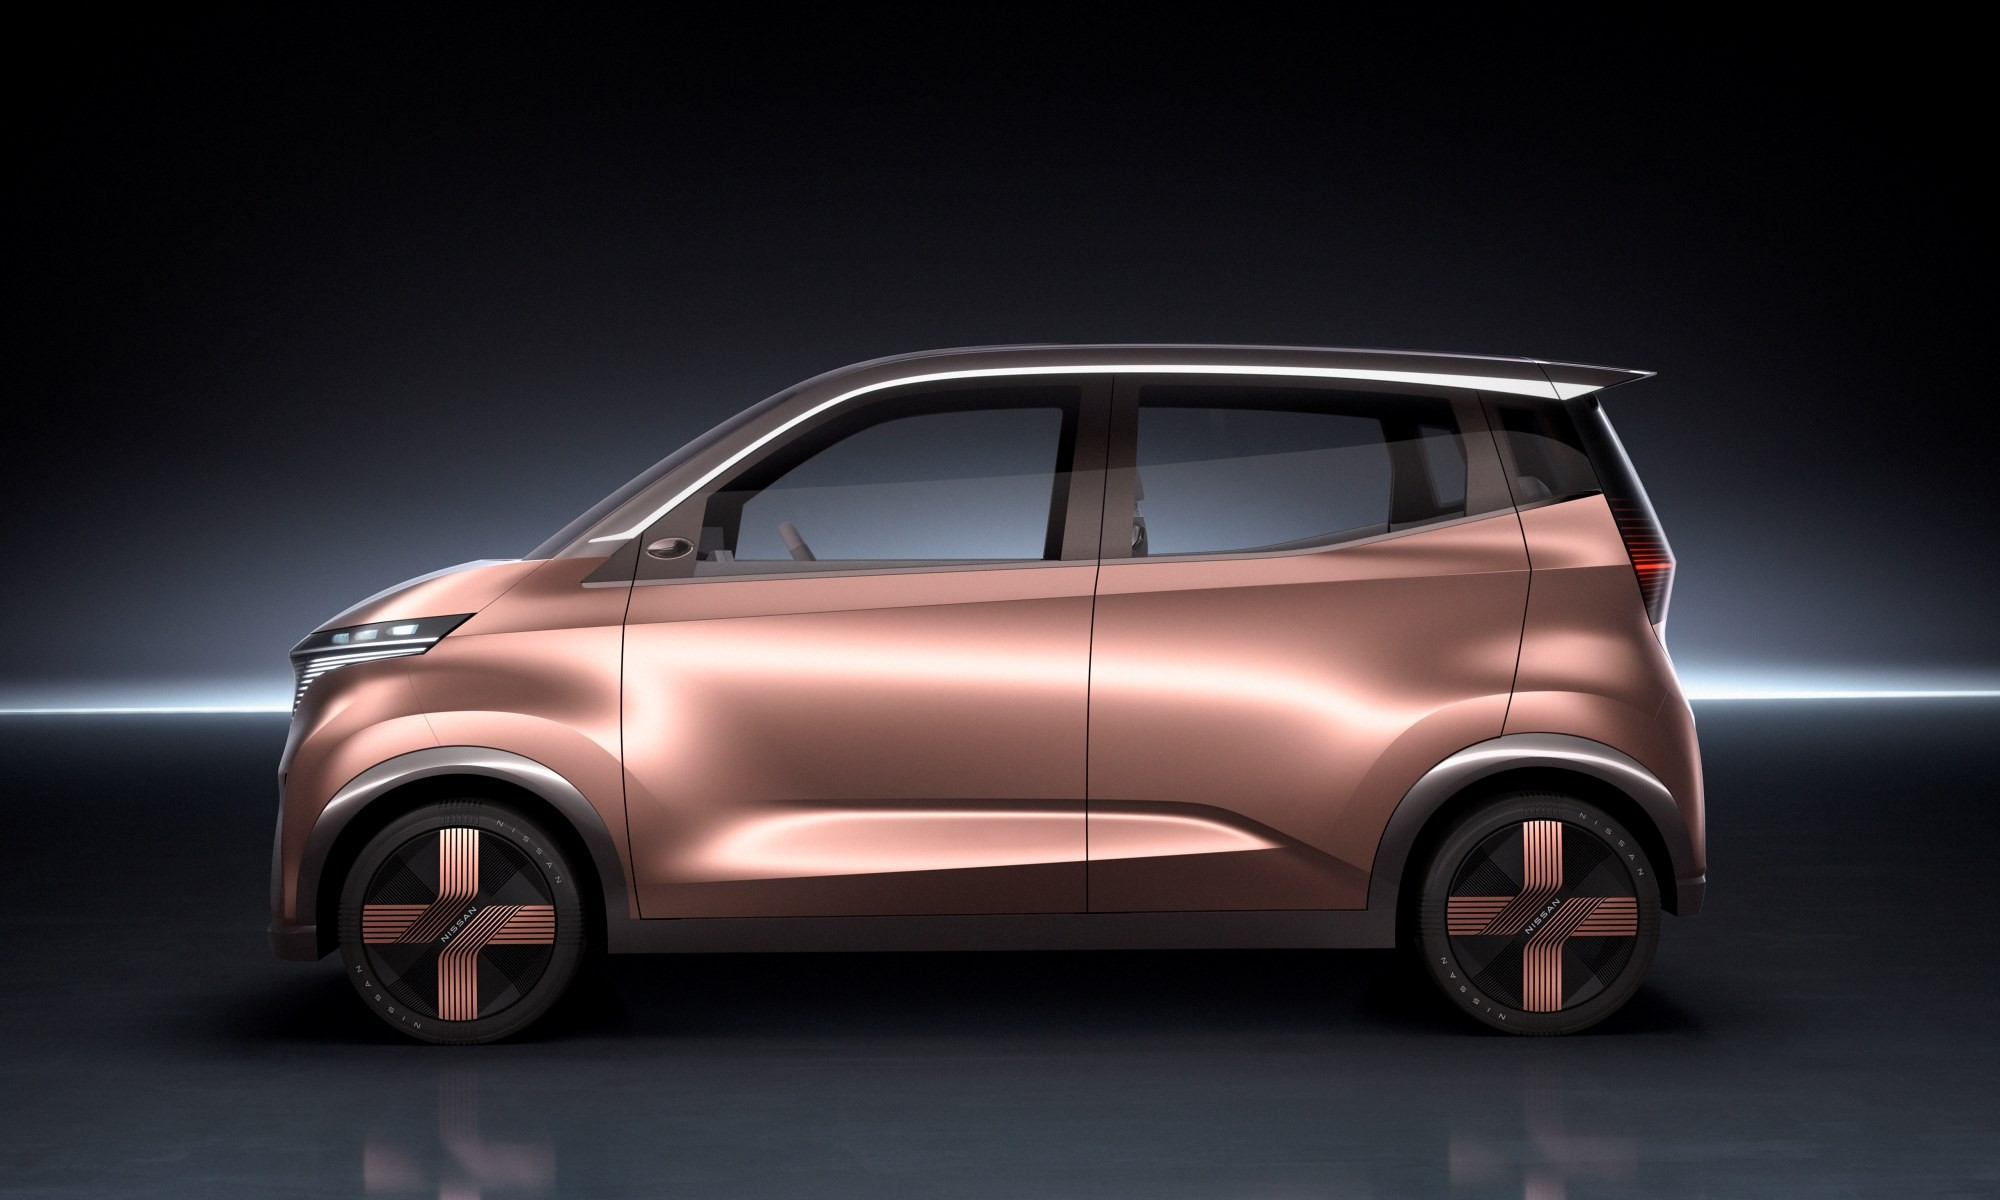 Nissan IMk concept car profile